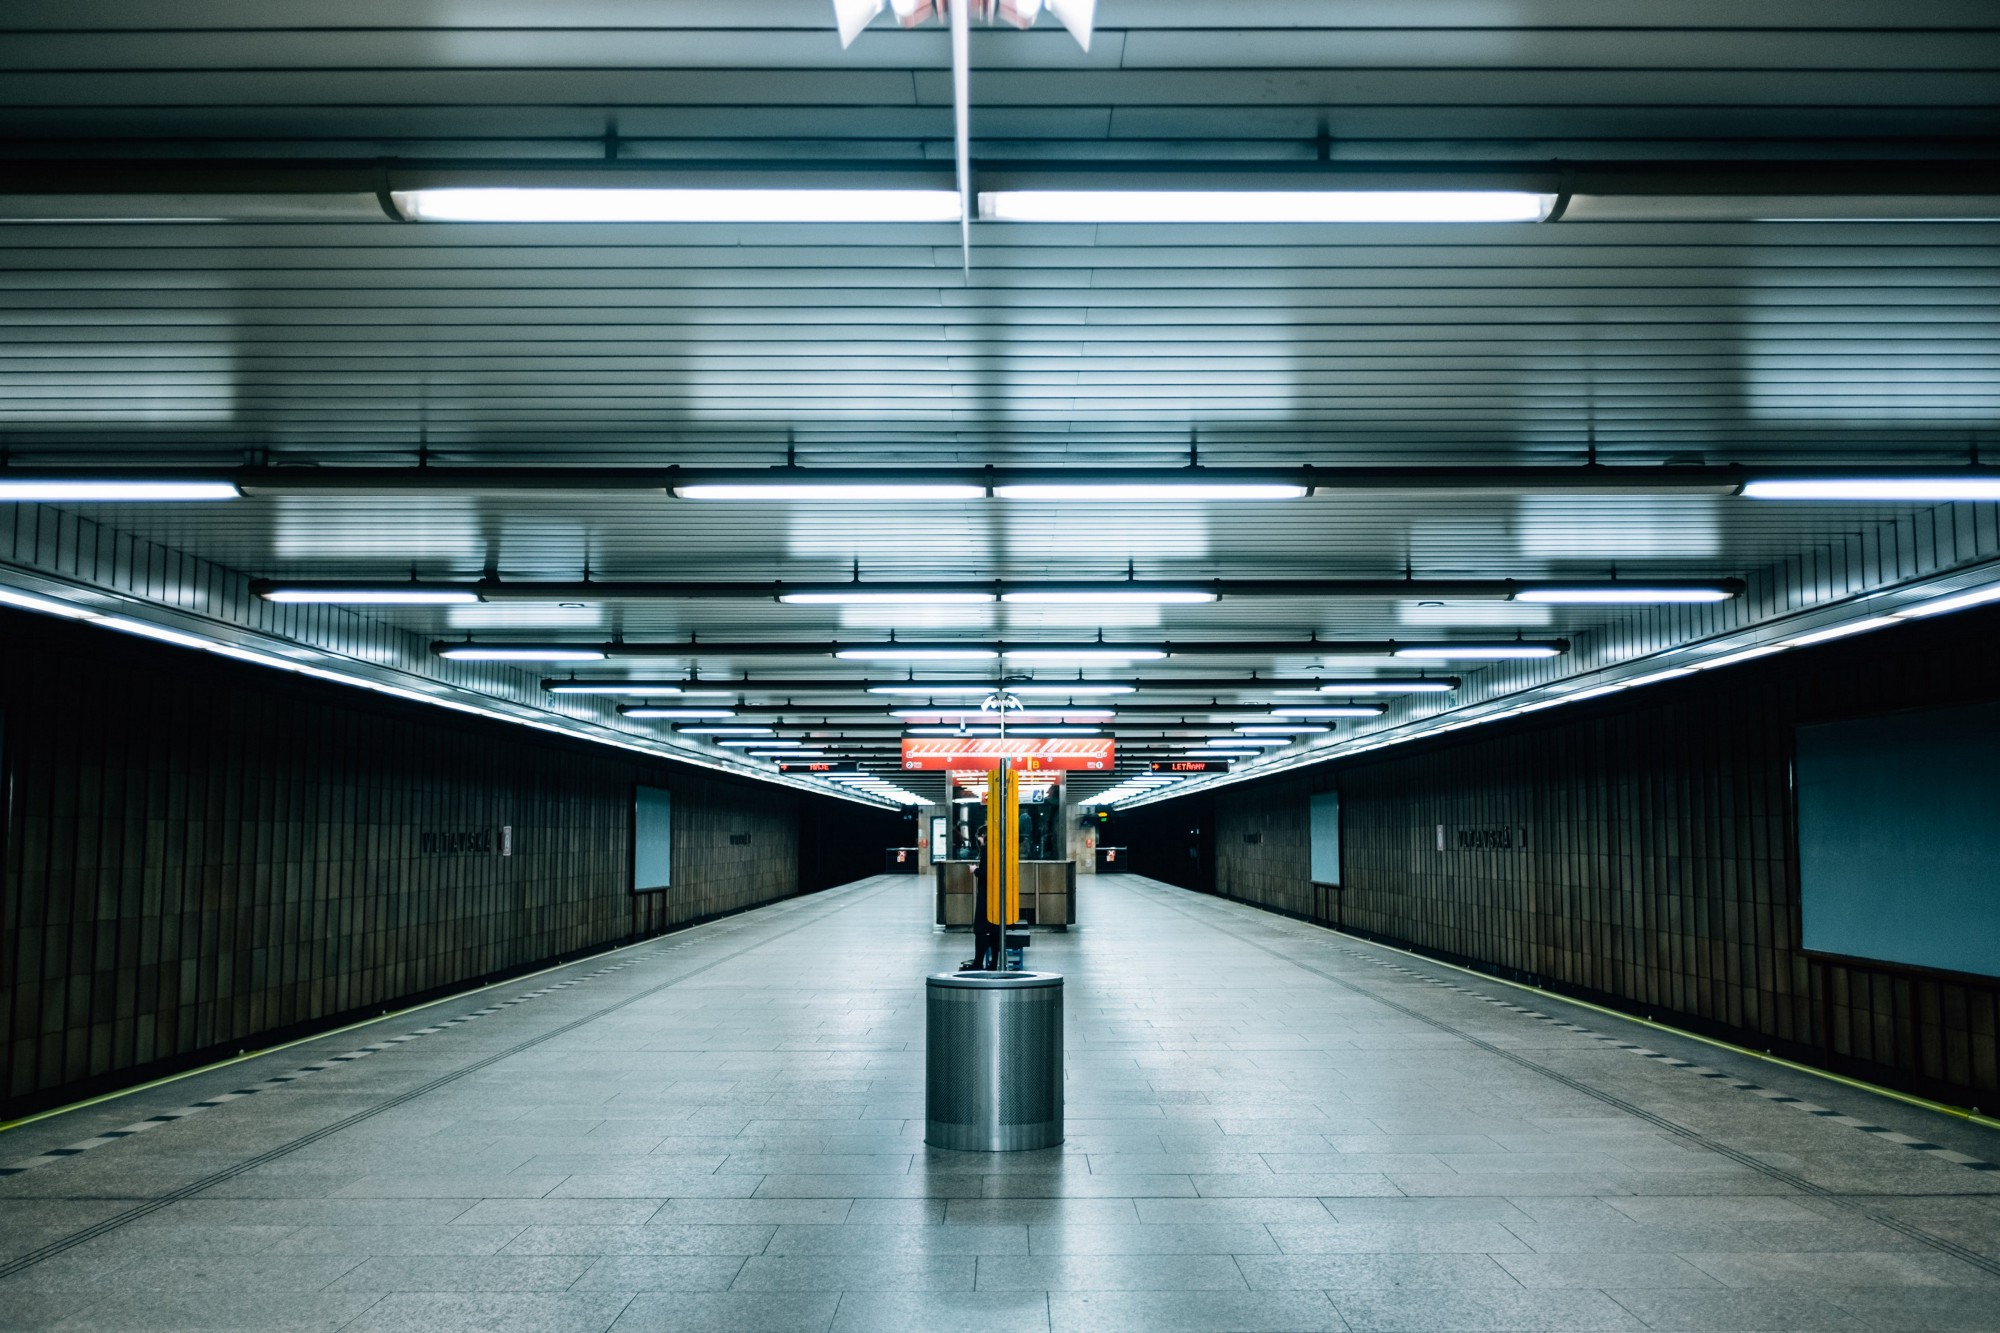 An empty underground station is eerily lit, blues and greys giving a somber mood.